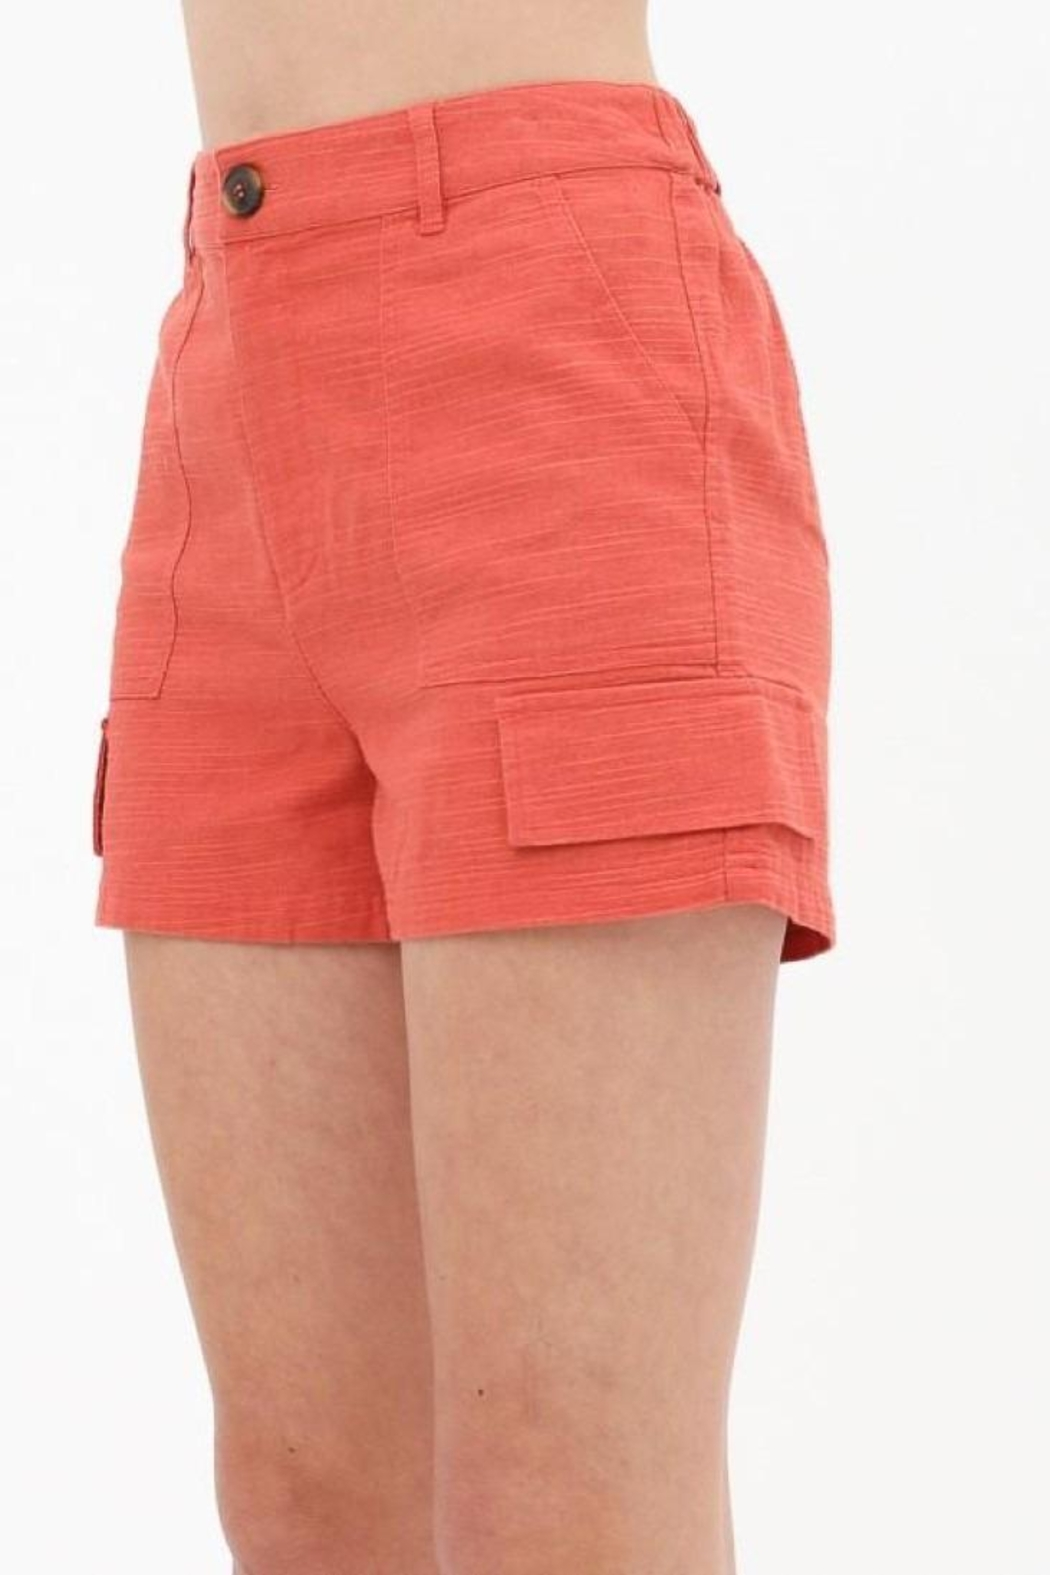 Love Tree Woven Button Front Pocket Detail Short (3 Colors) - Main Image